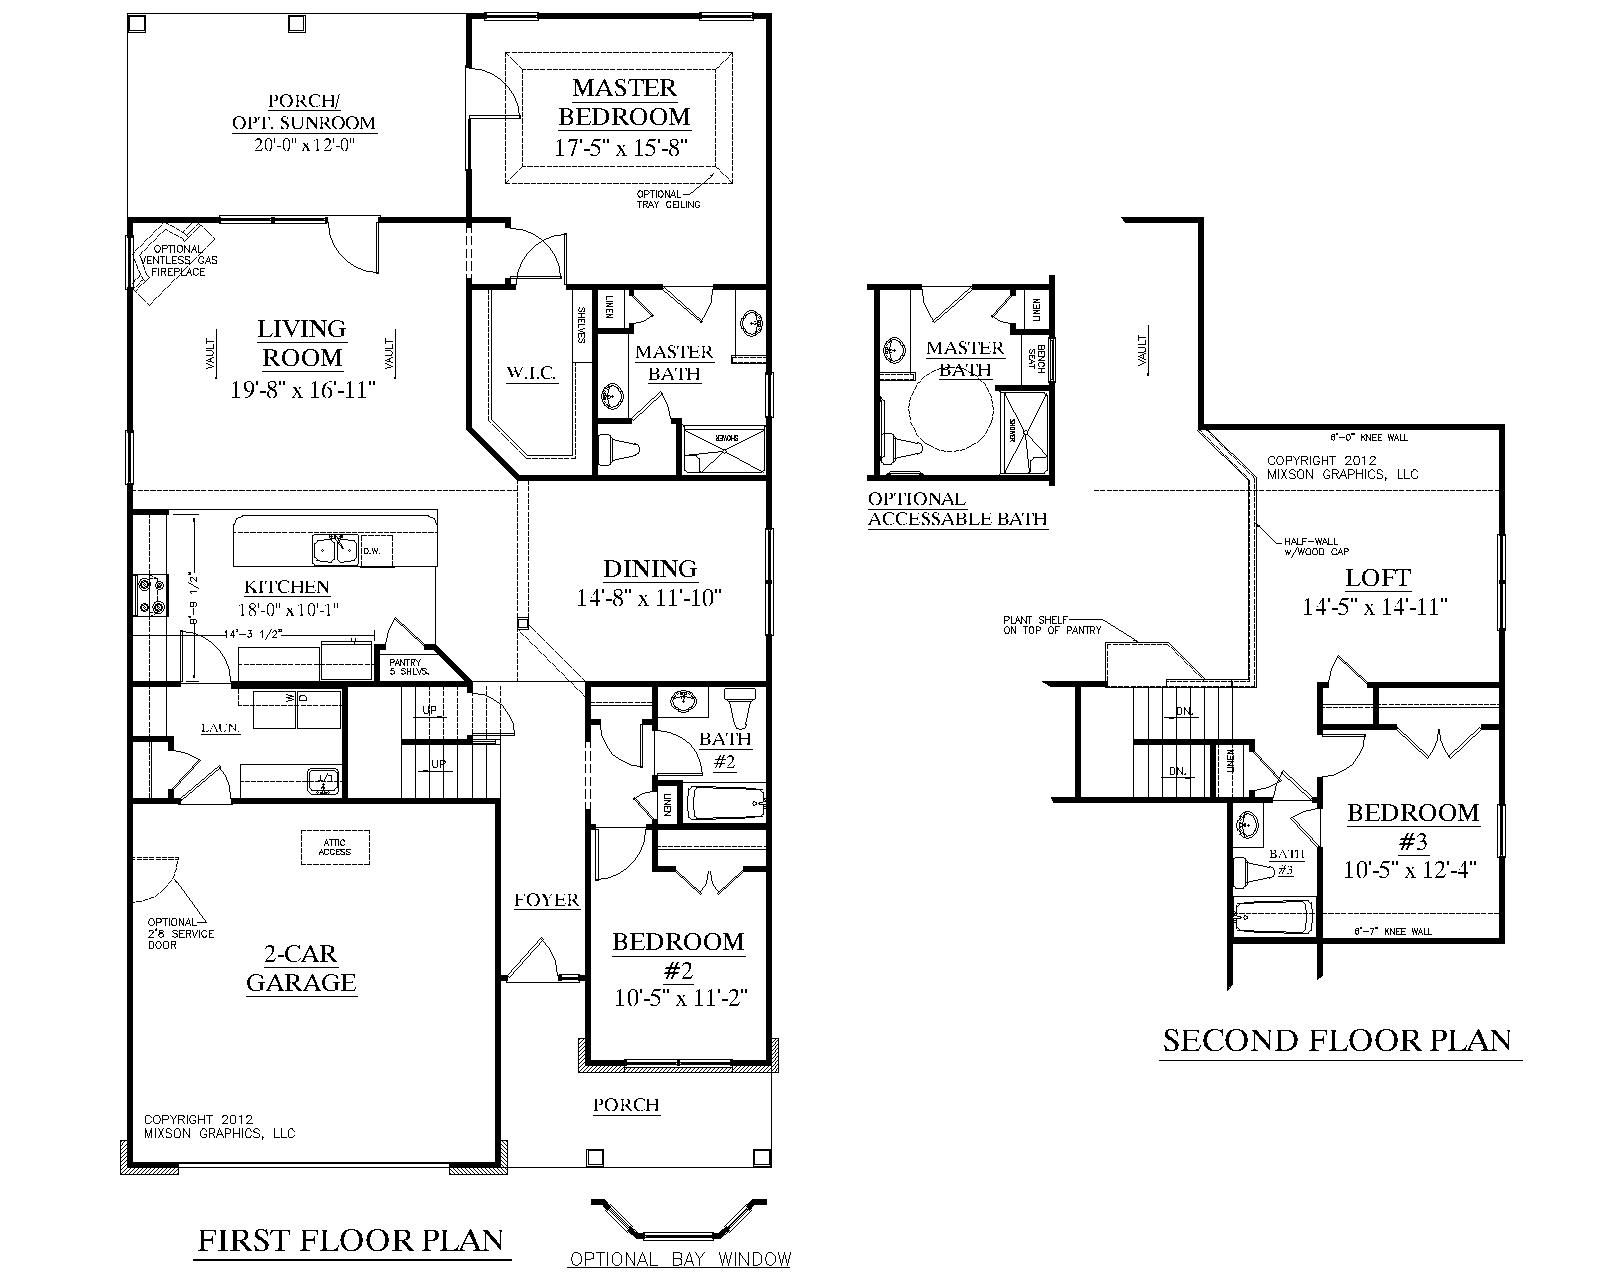 House plan 2224 kingstree floor plan traditional 1 1 2 for Upstairs floor plans